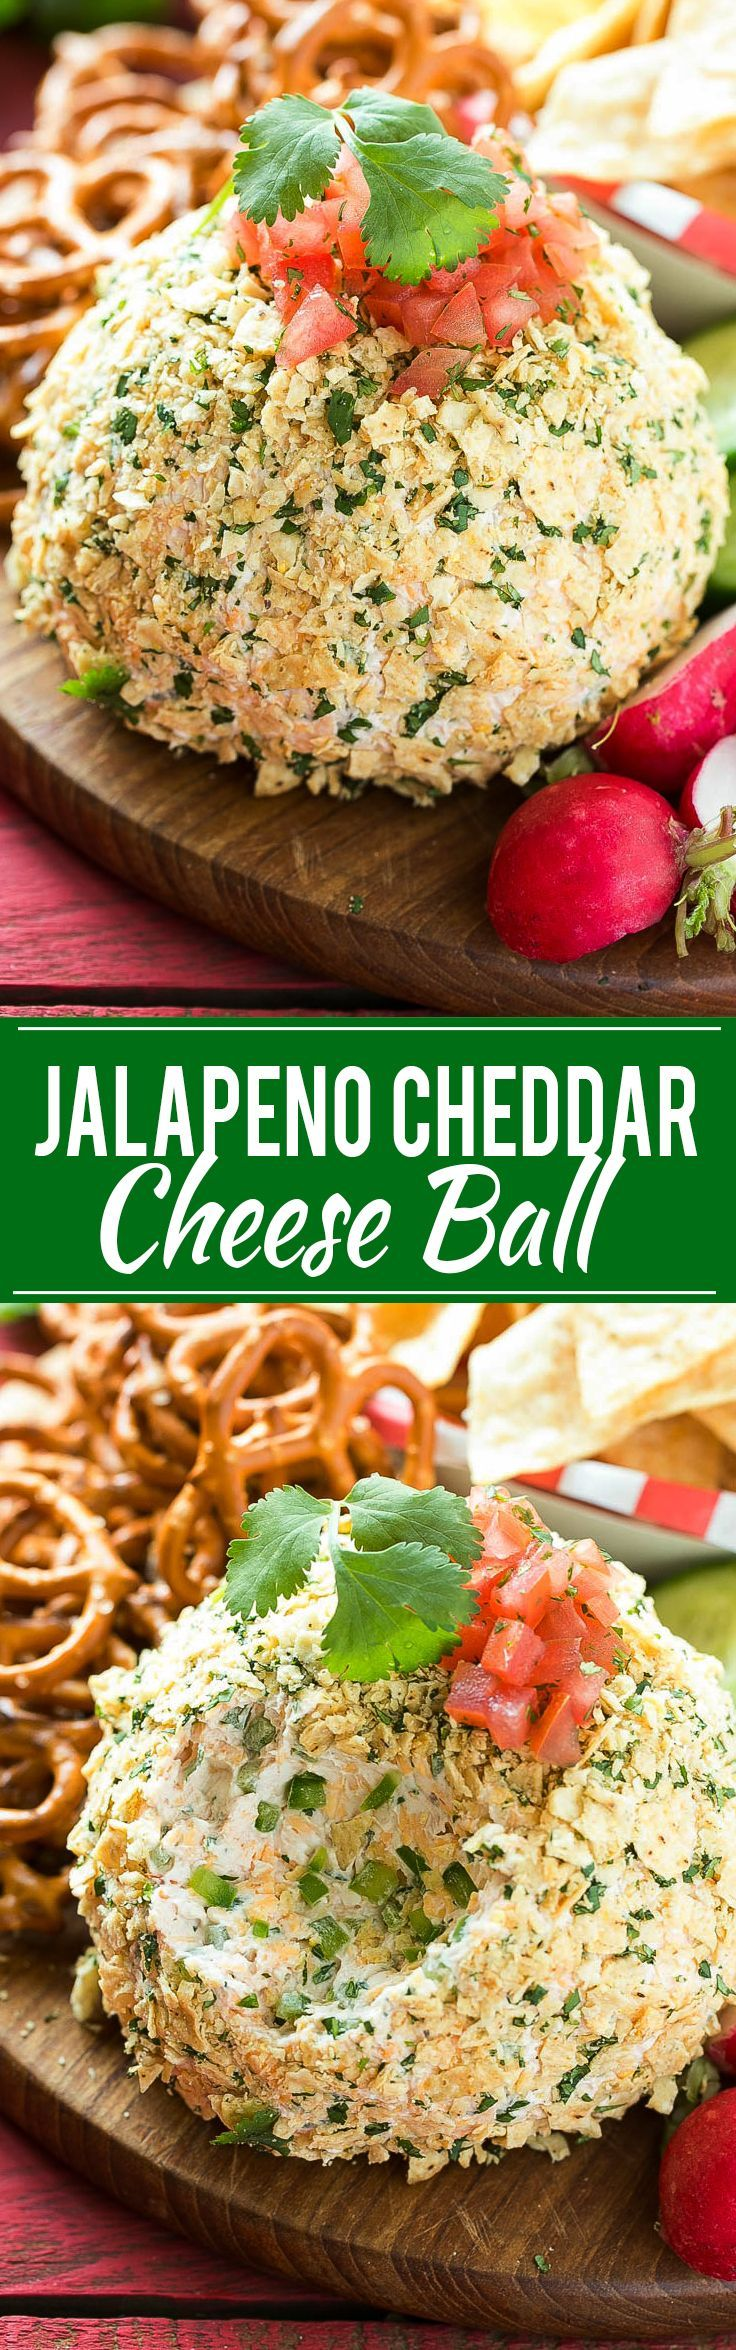 Jalapeño Cheddar Cheese Ball - Full of zesty Mexican flavor and takes just minutes to make. The perfect snack for game day!